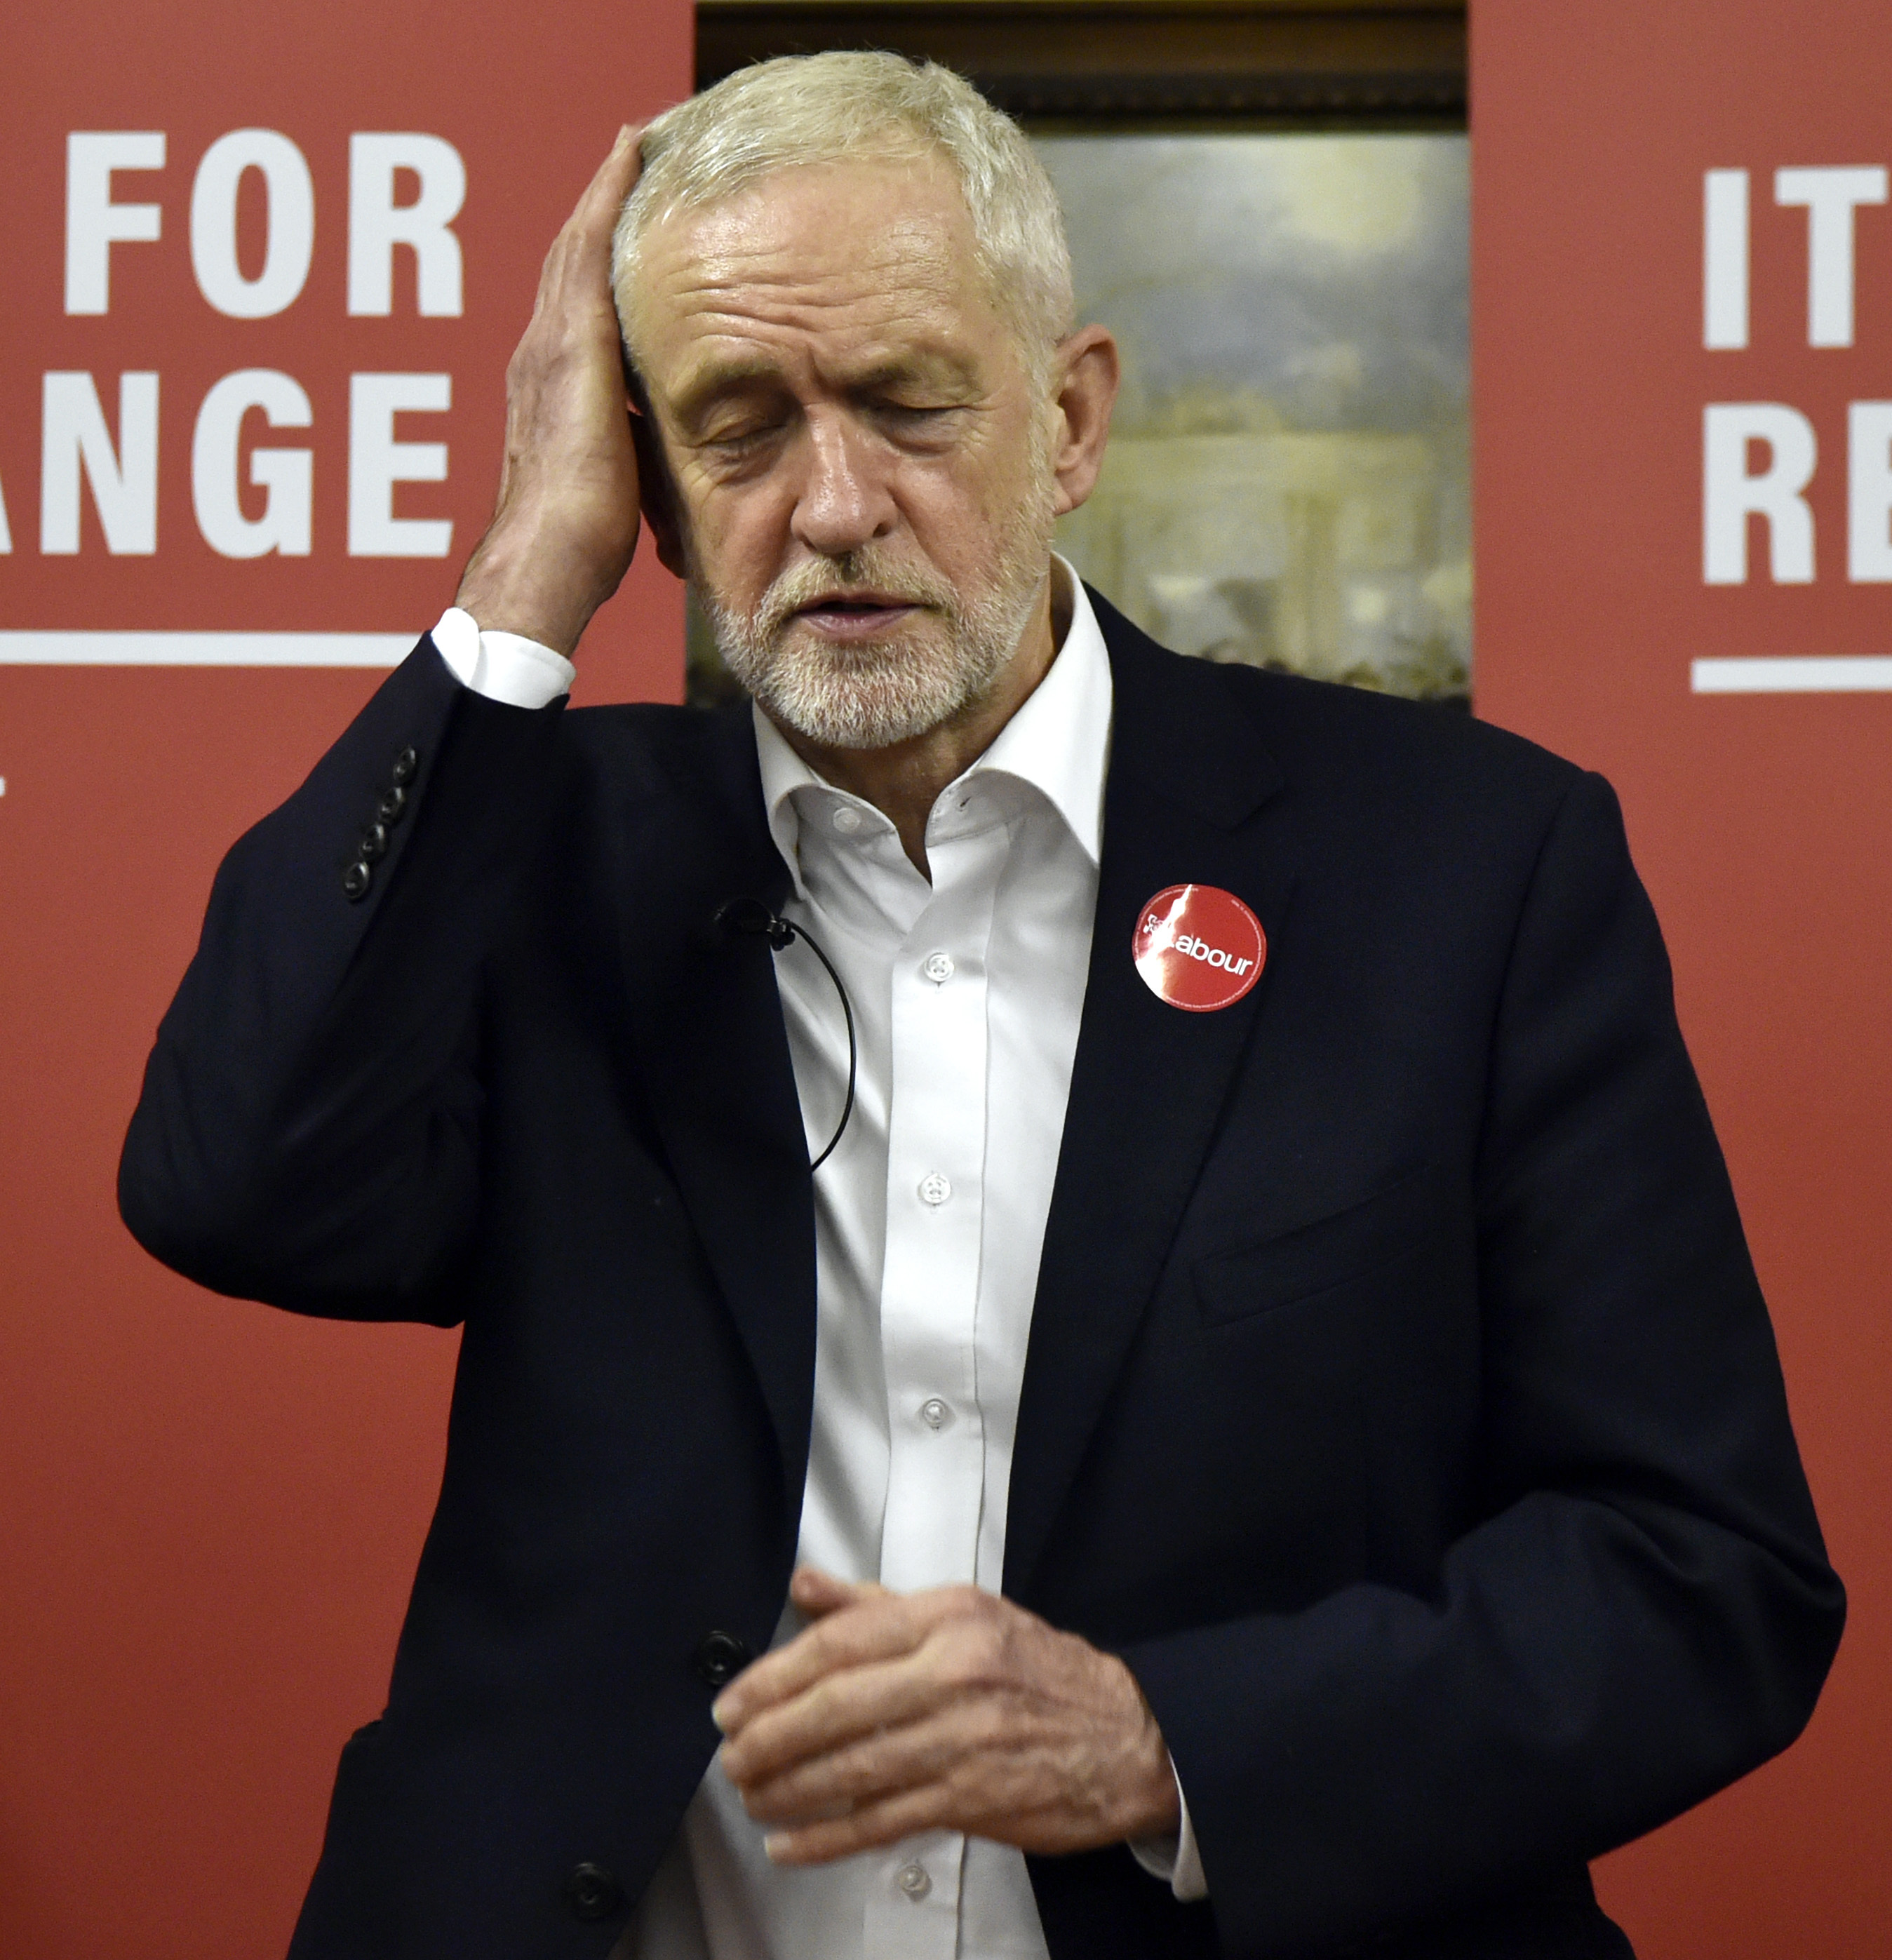 Labour Party leader Jeremy Corbyn speaks to supporters at the Pensioner Club in Dudley, England, Thursday, November 21, 2019